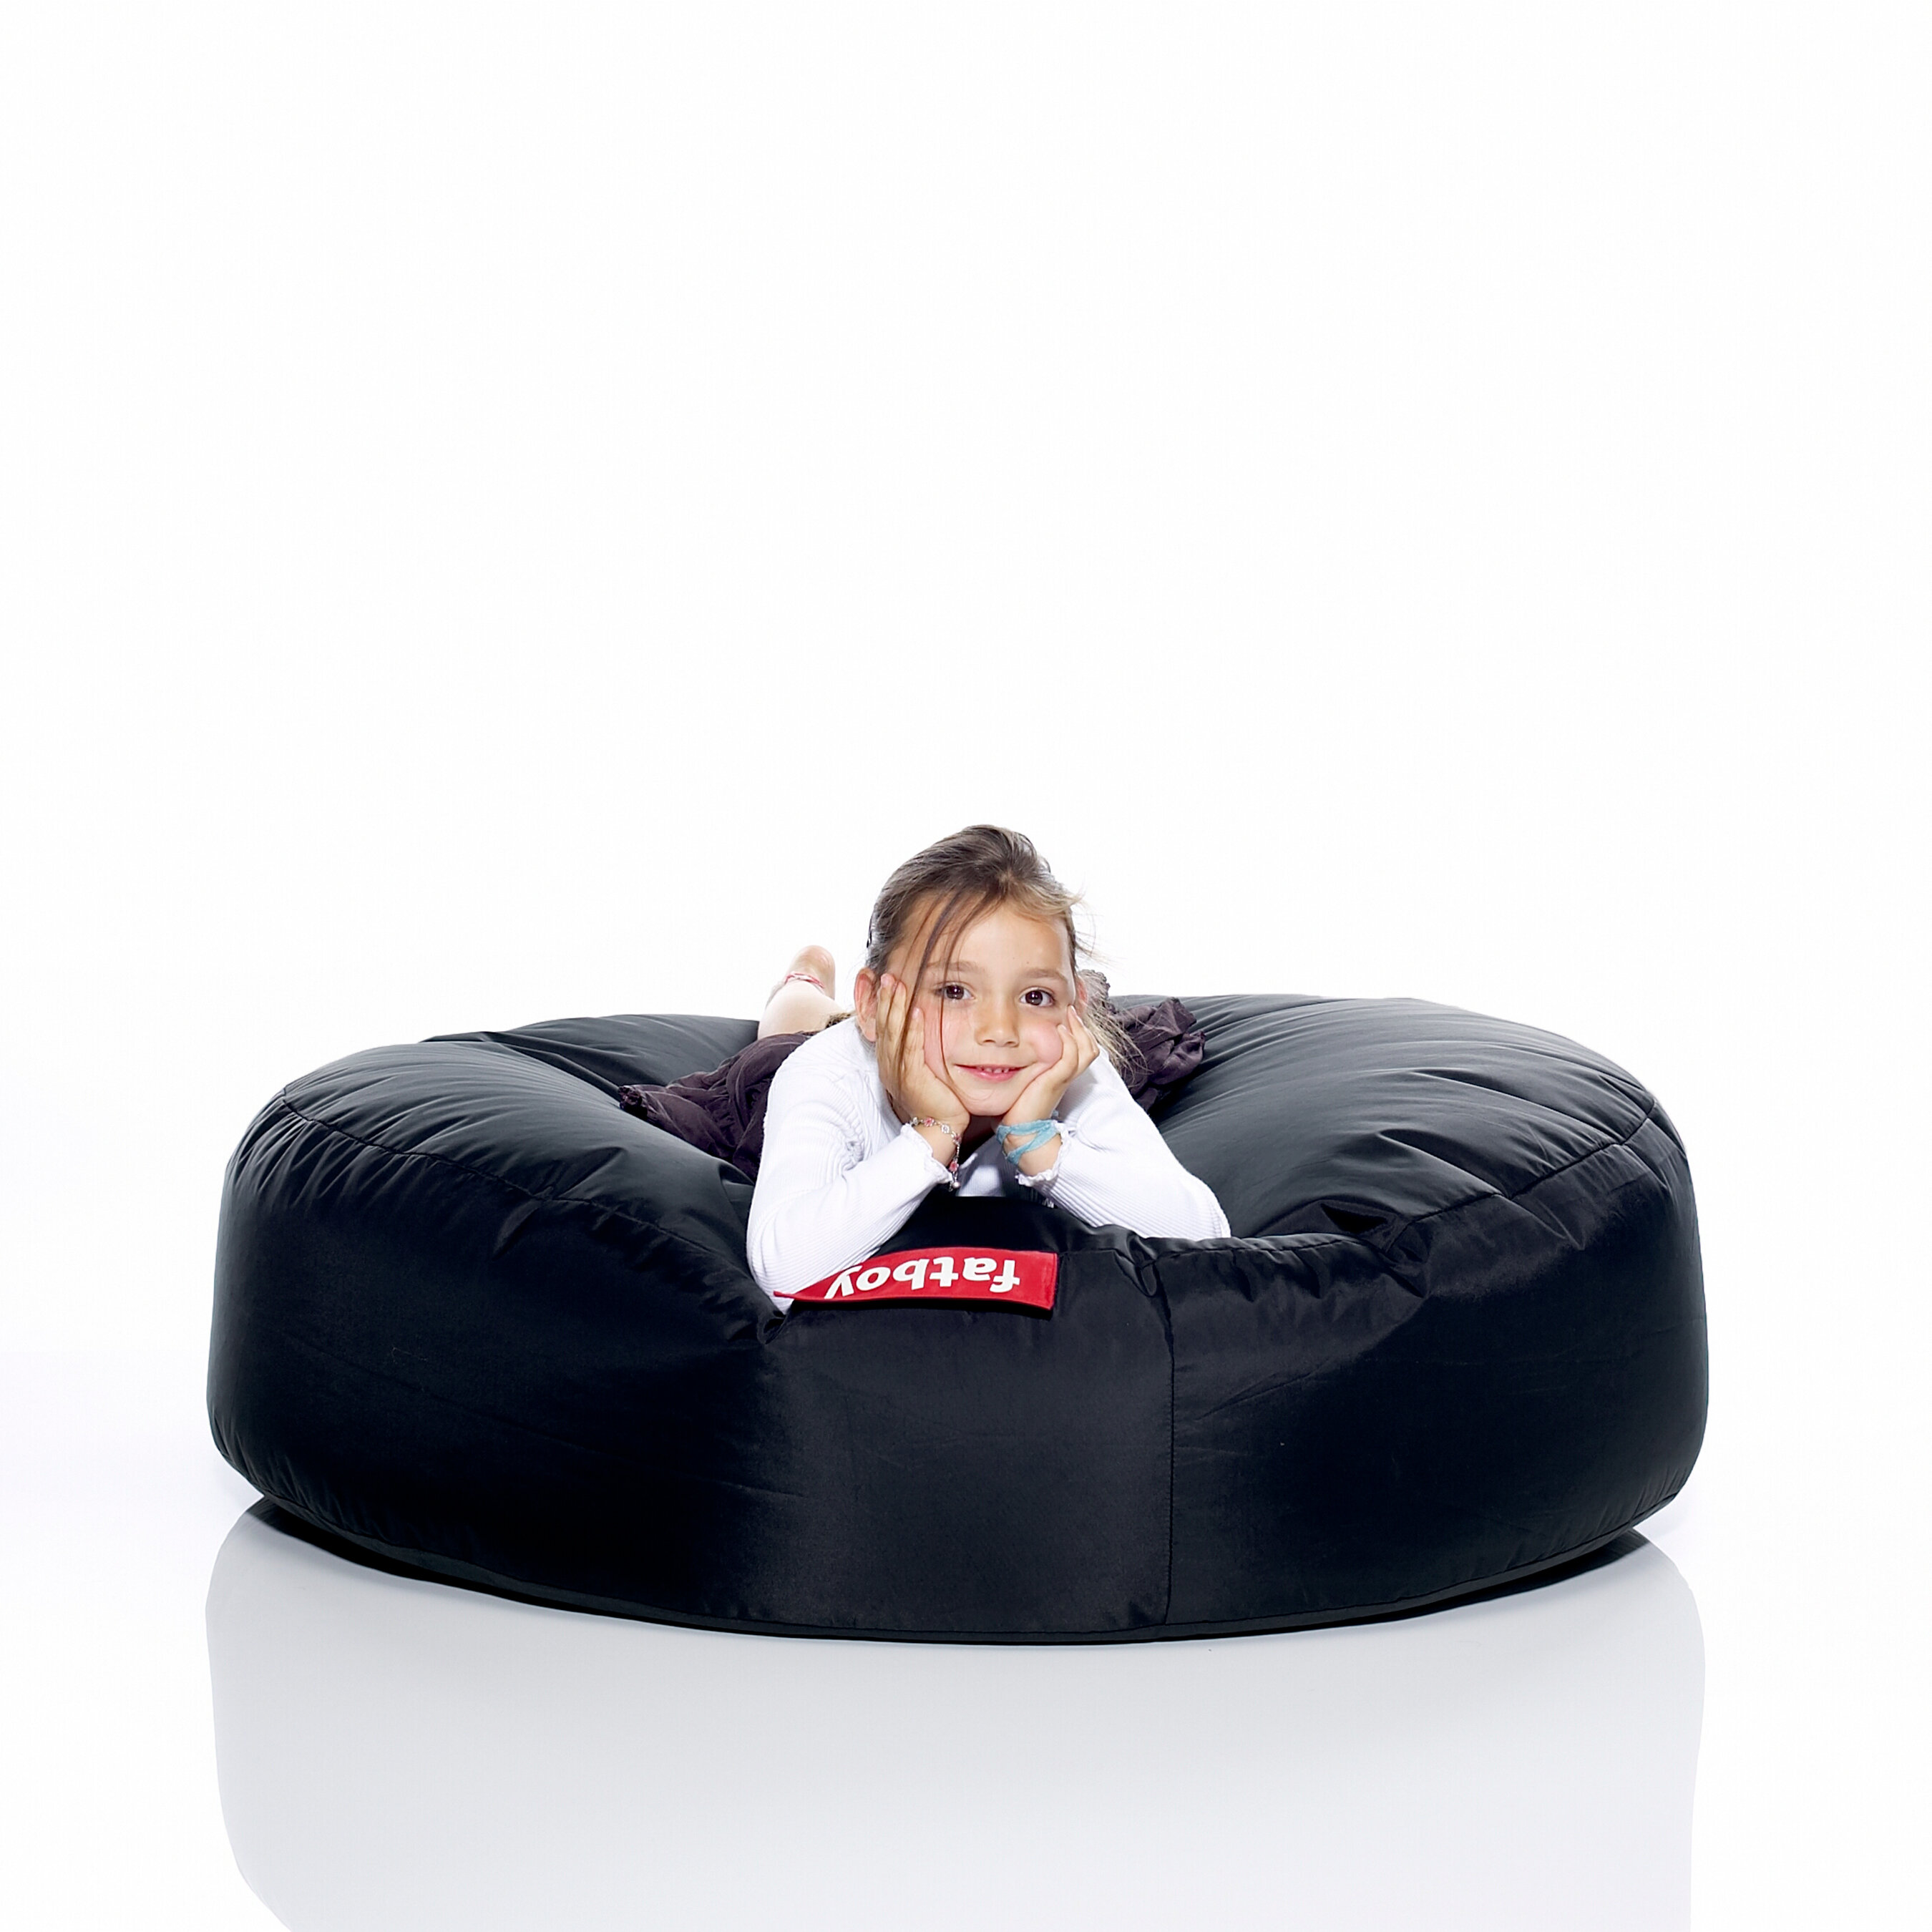 picture ideas furniture style trends home fatboy of and kids bags bean chairs gomoji awesome beanbag sxs bag inspiring